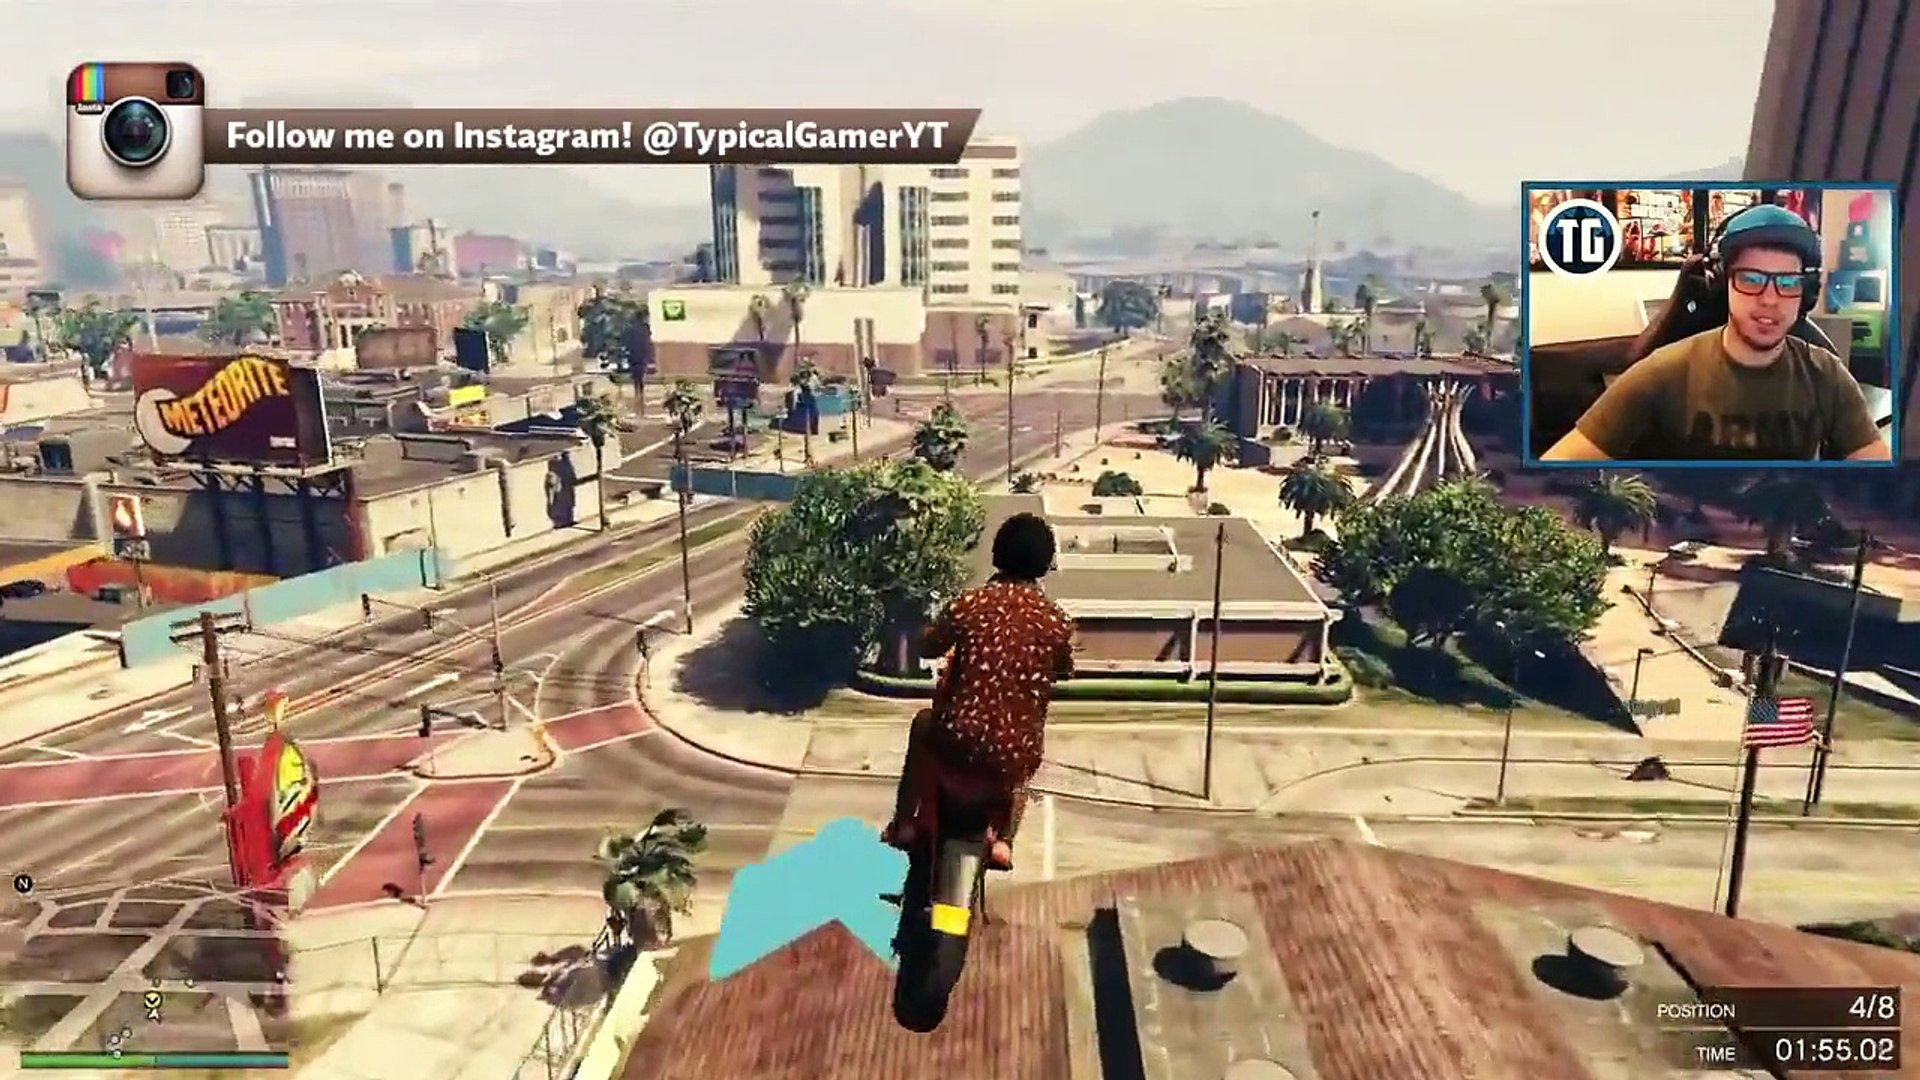 CRAZY BIKE PARKOUR RACES! (GTA 5 Funny Moments) -Typical Gamer